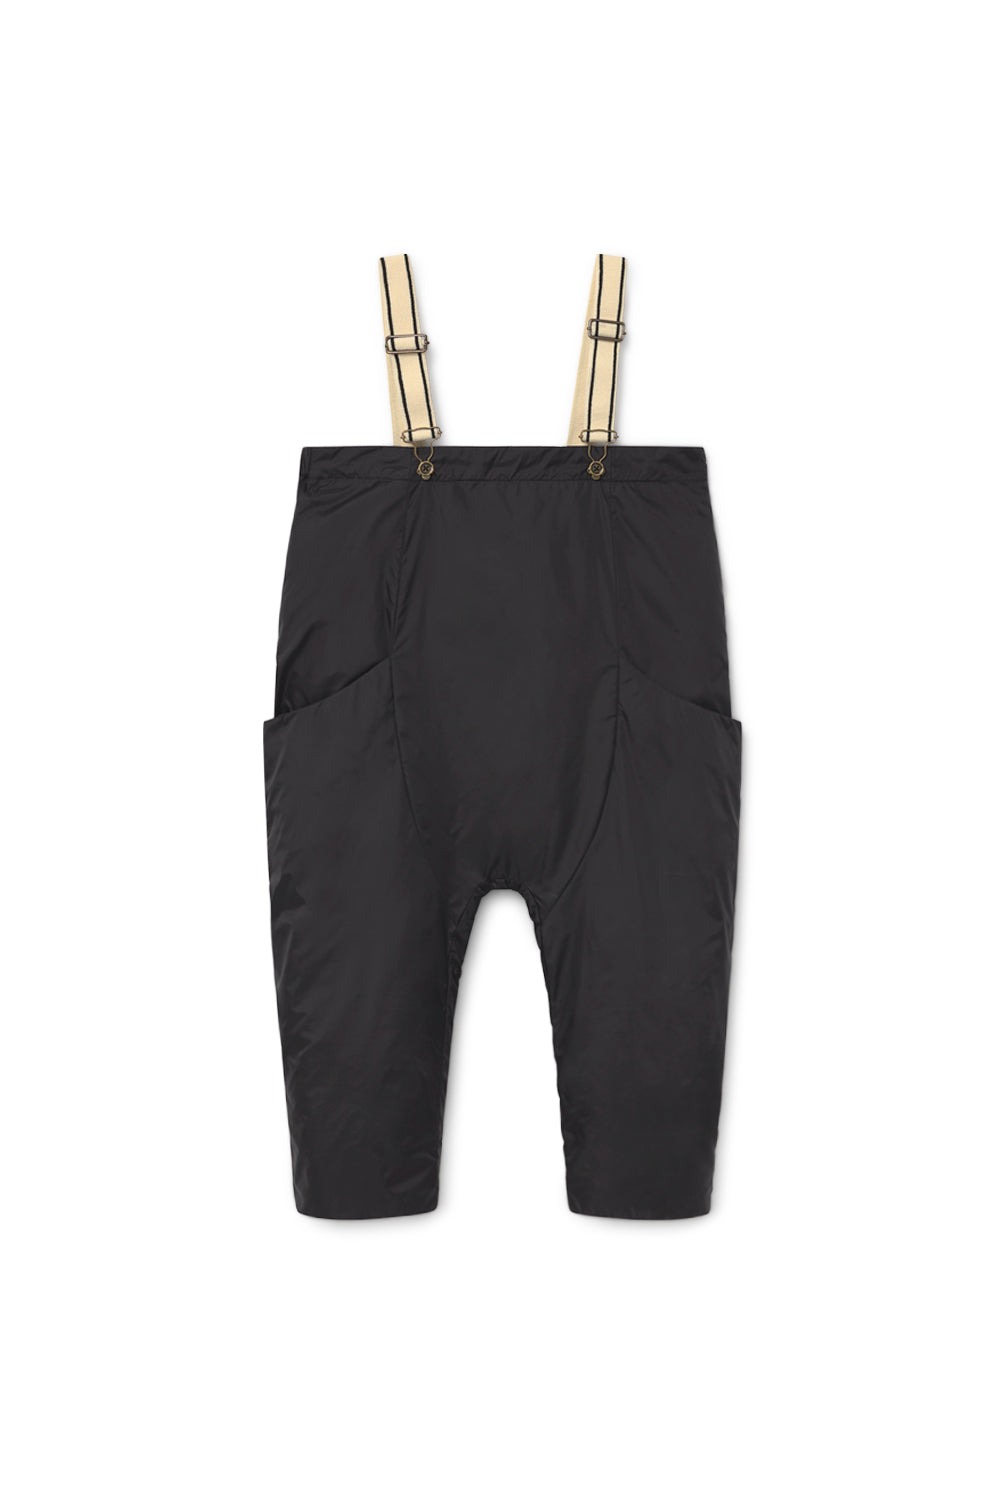 Little Creative Factory Unexpected Dungarees - Black